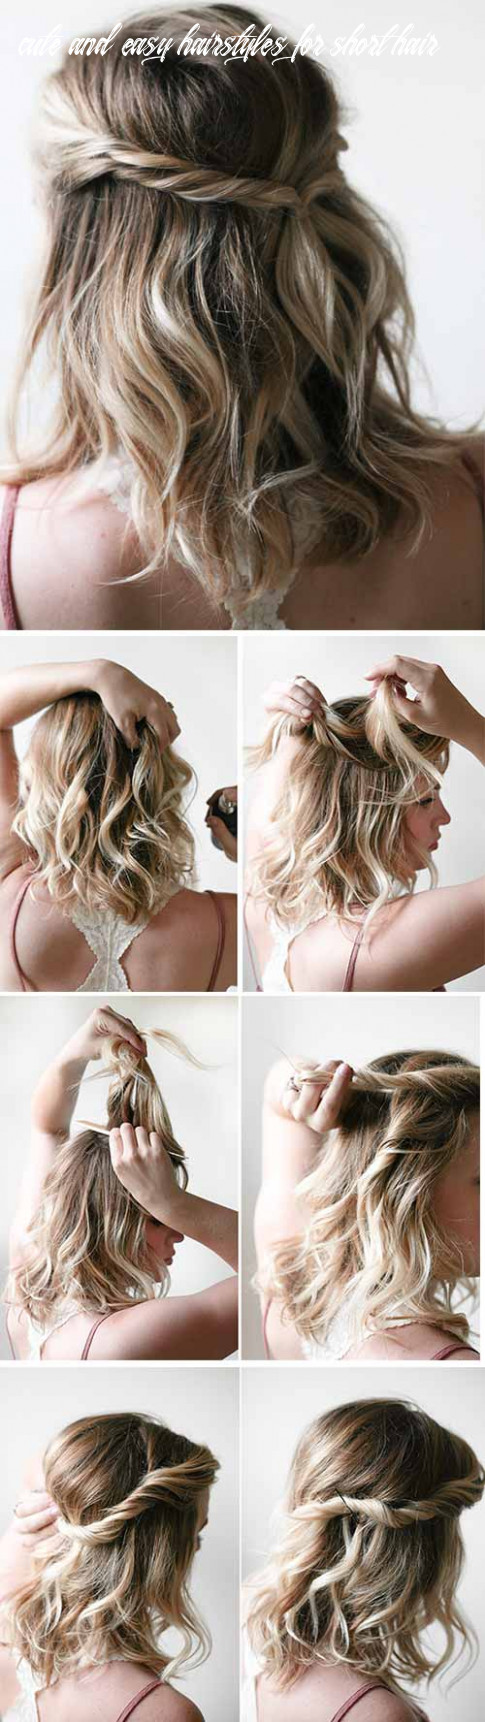 12 incredible diy short hairstyles a step by step guide cute and easy hairstyles for short hair